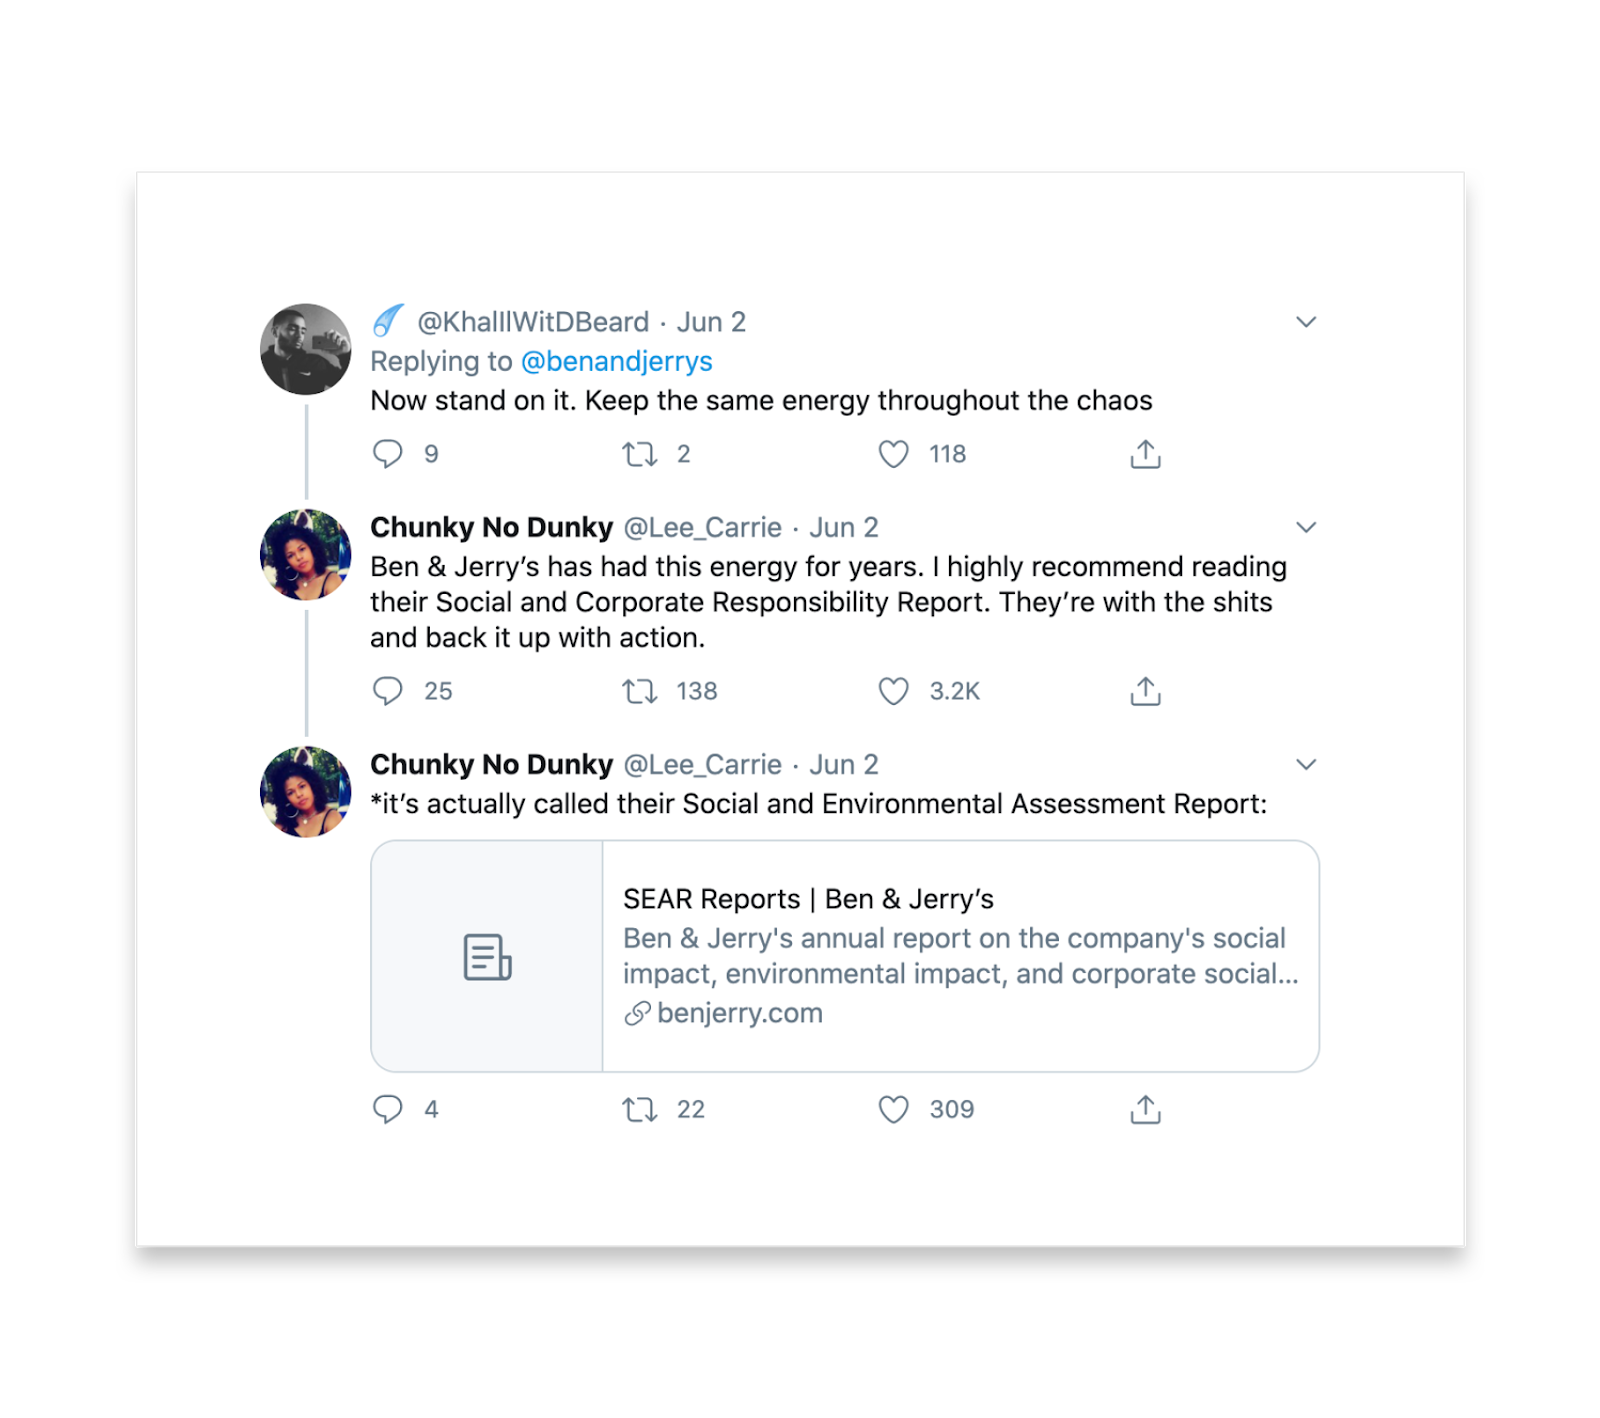 More replies to ben and jerry's. @khalilwitdbeard says Now stand on it. Keep the same energy throughout the chaos. Chunky no Dunky says Ben & Jerry's has had this energy for years. I highly recommend reading their Social and Corporate Responsibility Report. They're with the shits and back it up with action. Chunky replies to herself *it's actually called their Social and Environmental Assessment Report. She shares the link